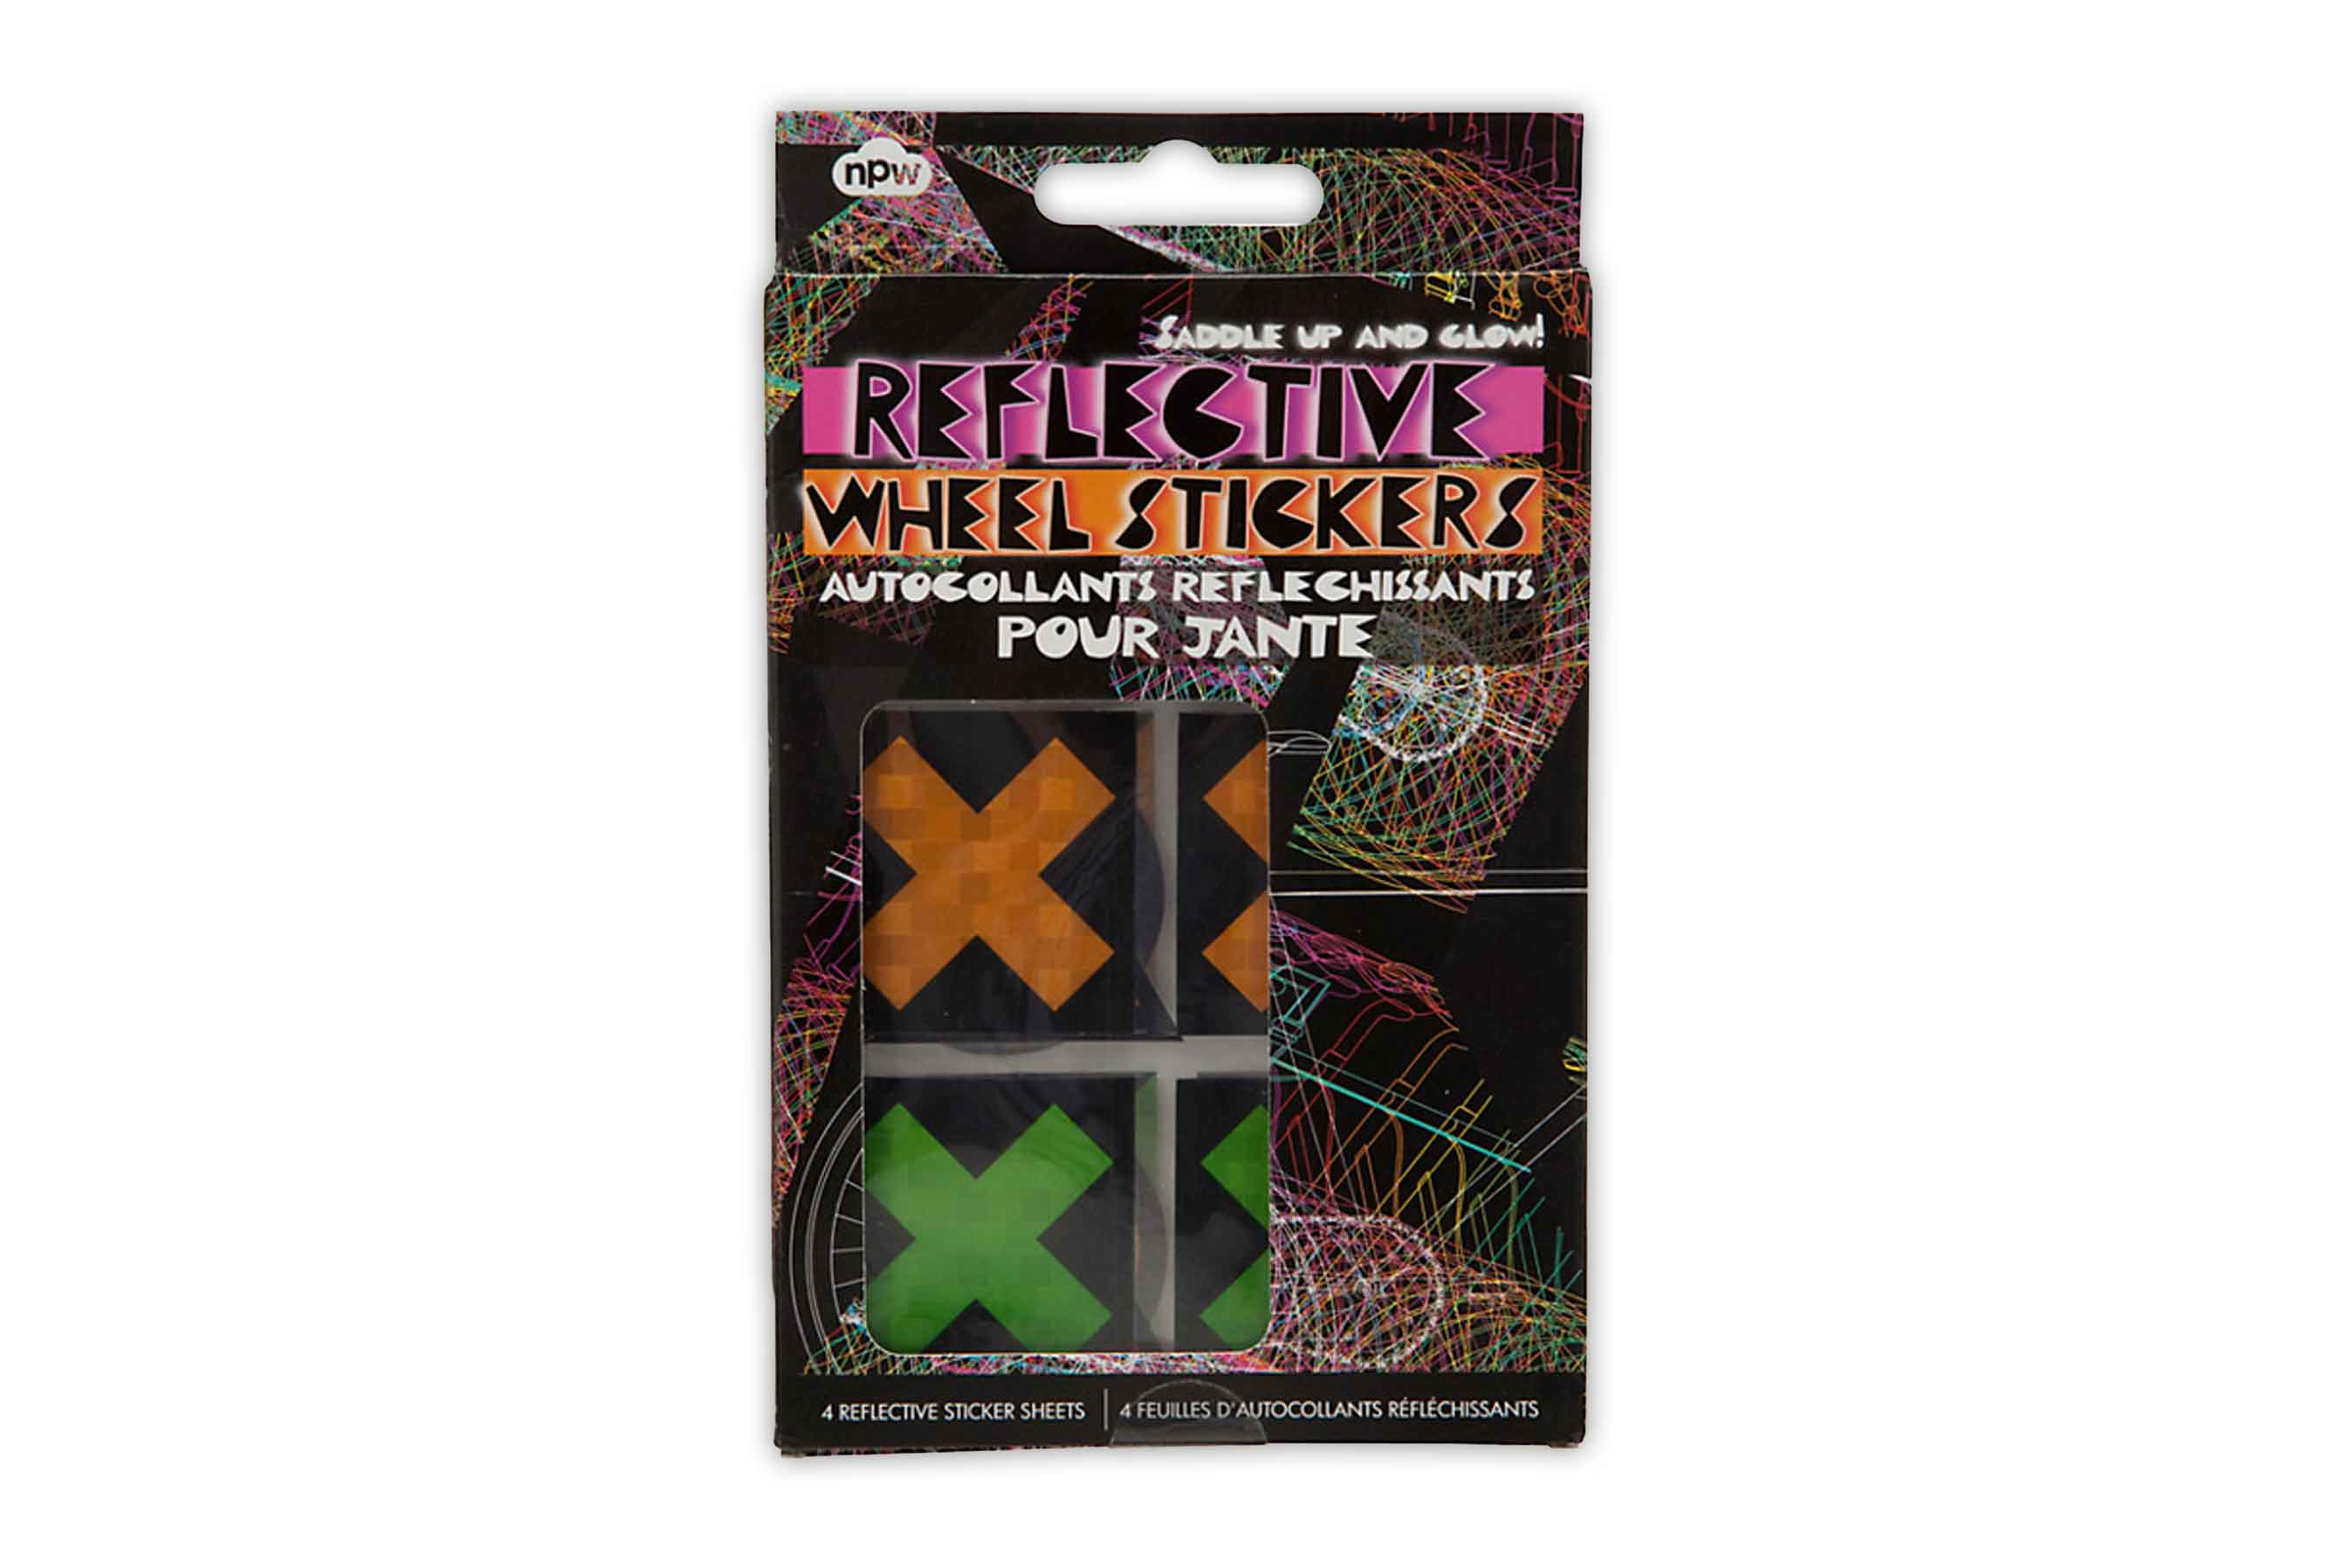 Reflective Bicycle Wheel Stickers